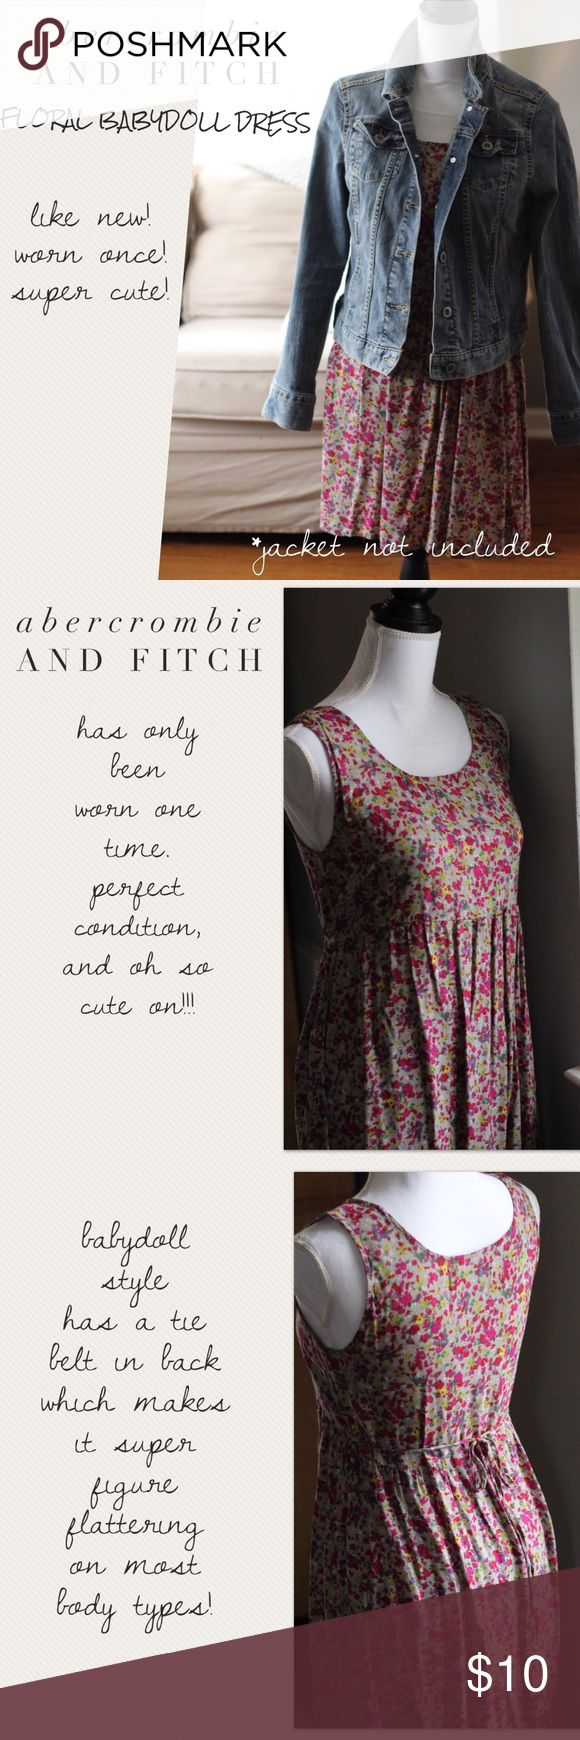 Abercrombie and Fitch Dress Like New (as it was only worn one time), babydoll dress from A&F.  Size Large (their sizing runs small).  Dress has no flaws and looks brand new. Abercrombie & Fitch Dresses